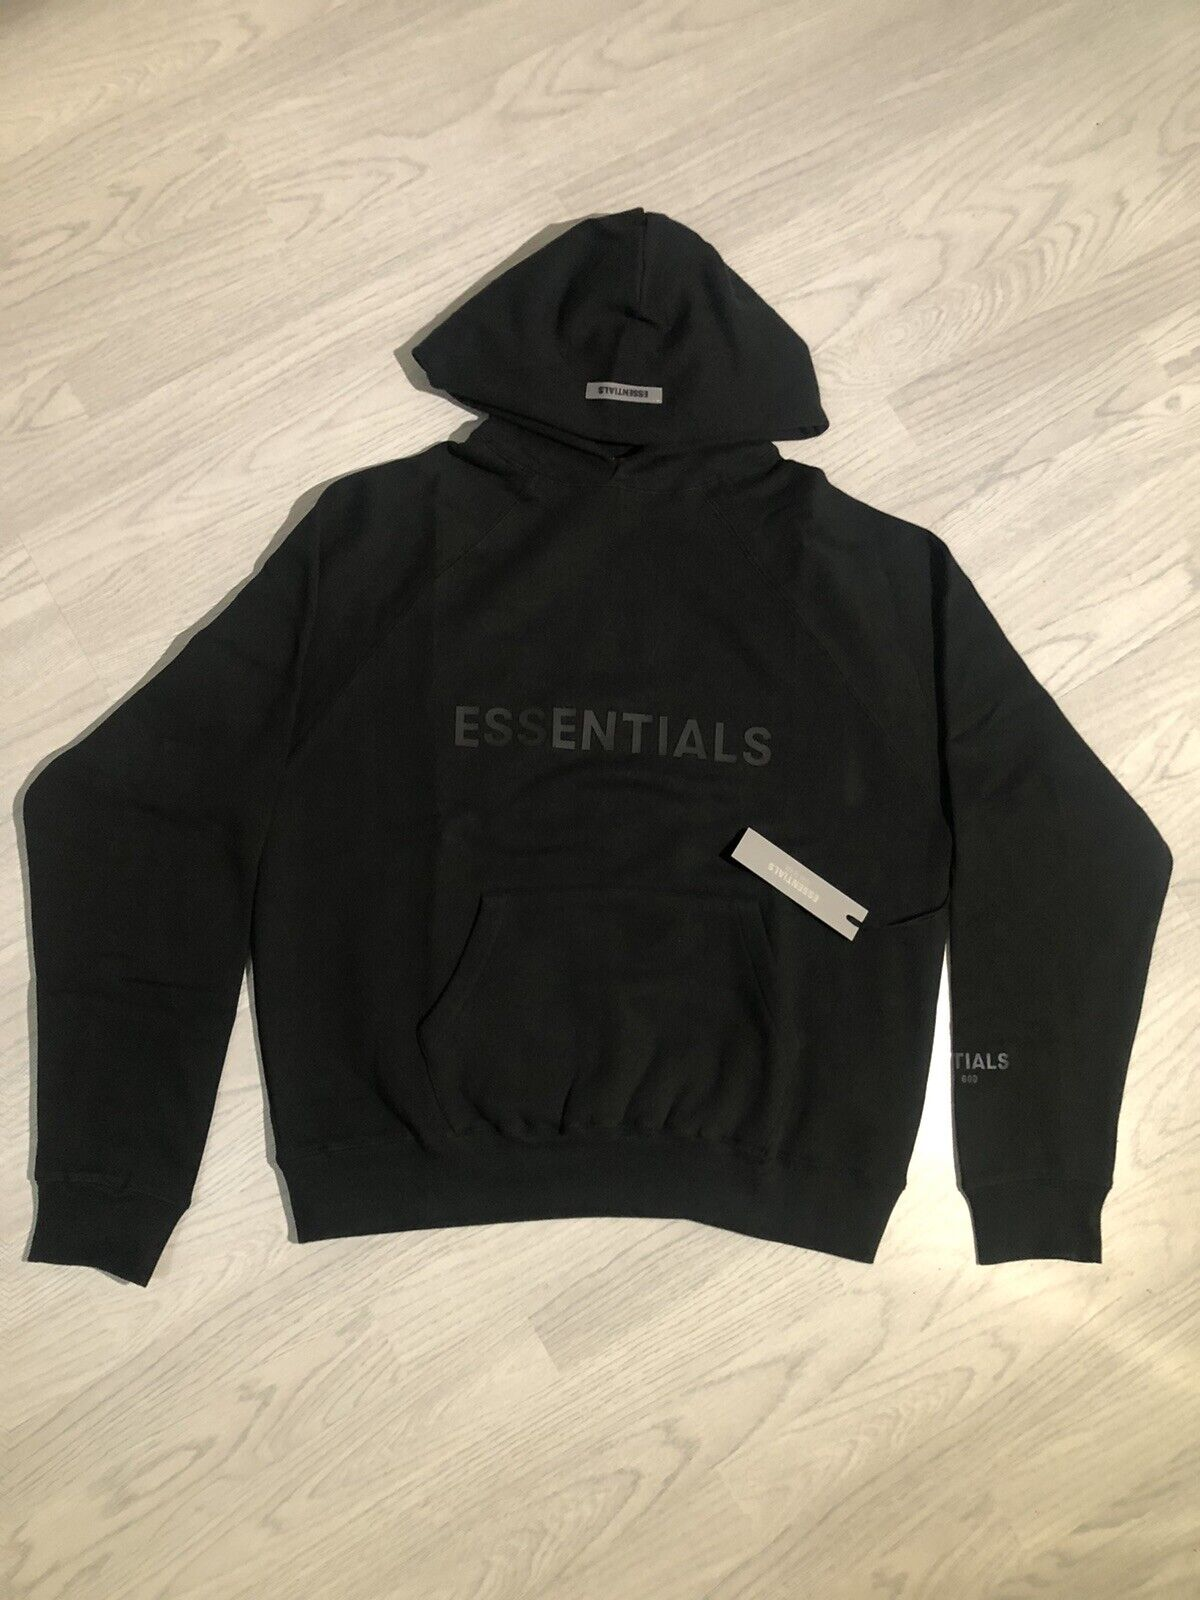 AUTHENTIC ESSENTIAL FEAR OF GOD HOODIE MEDIUM, NEXT DAY DELIVERY